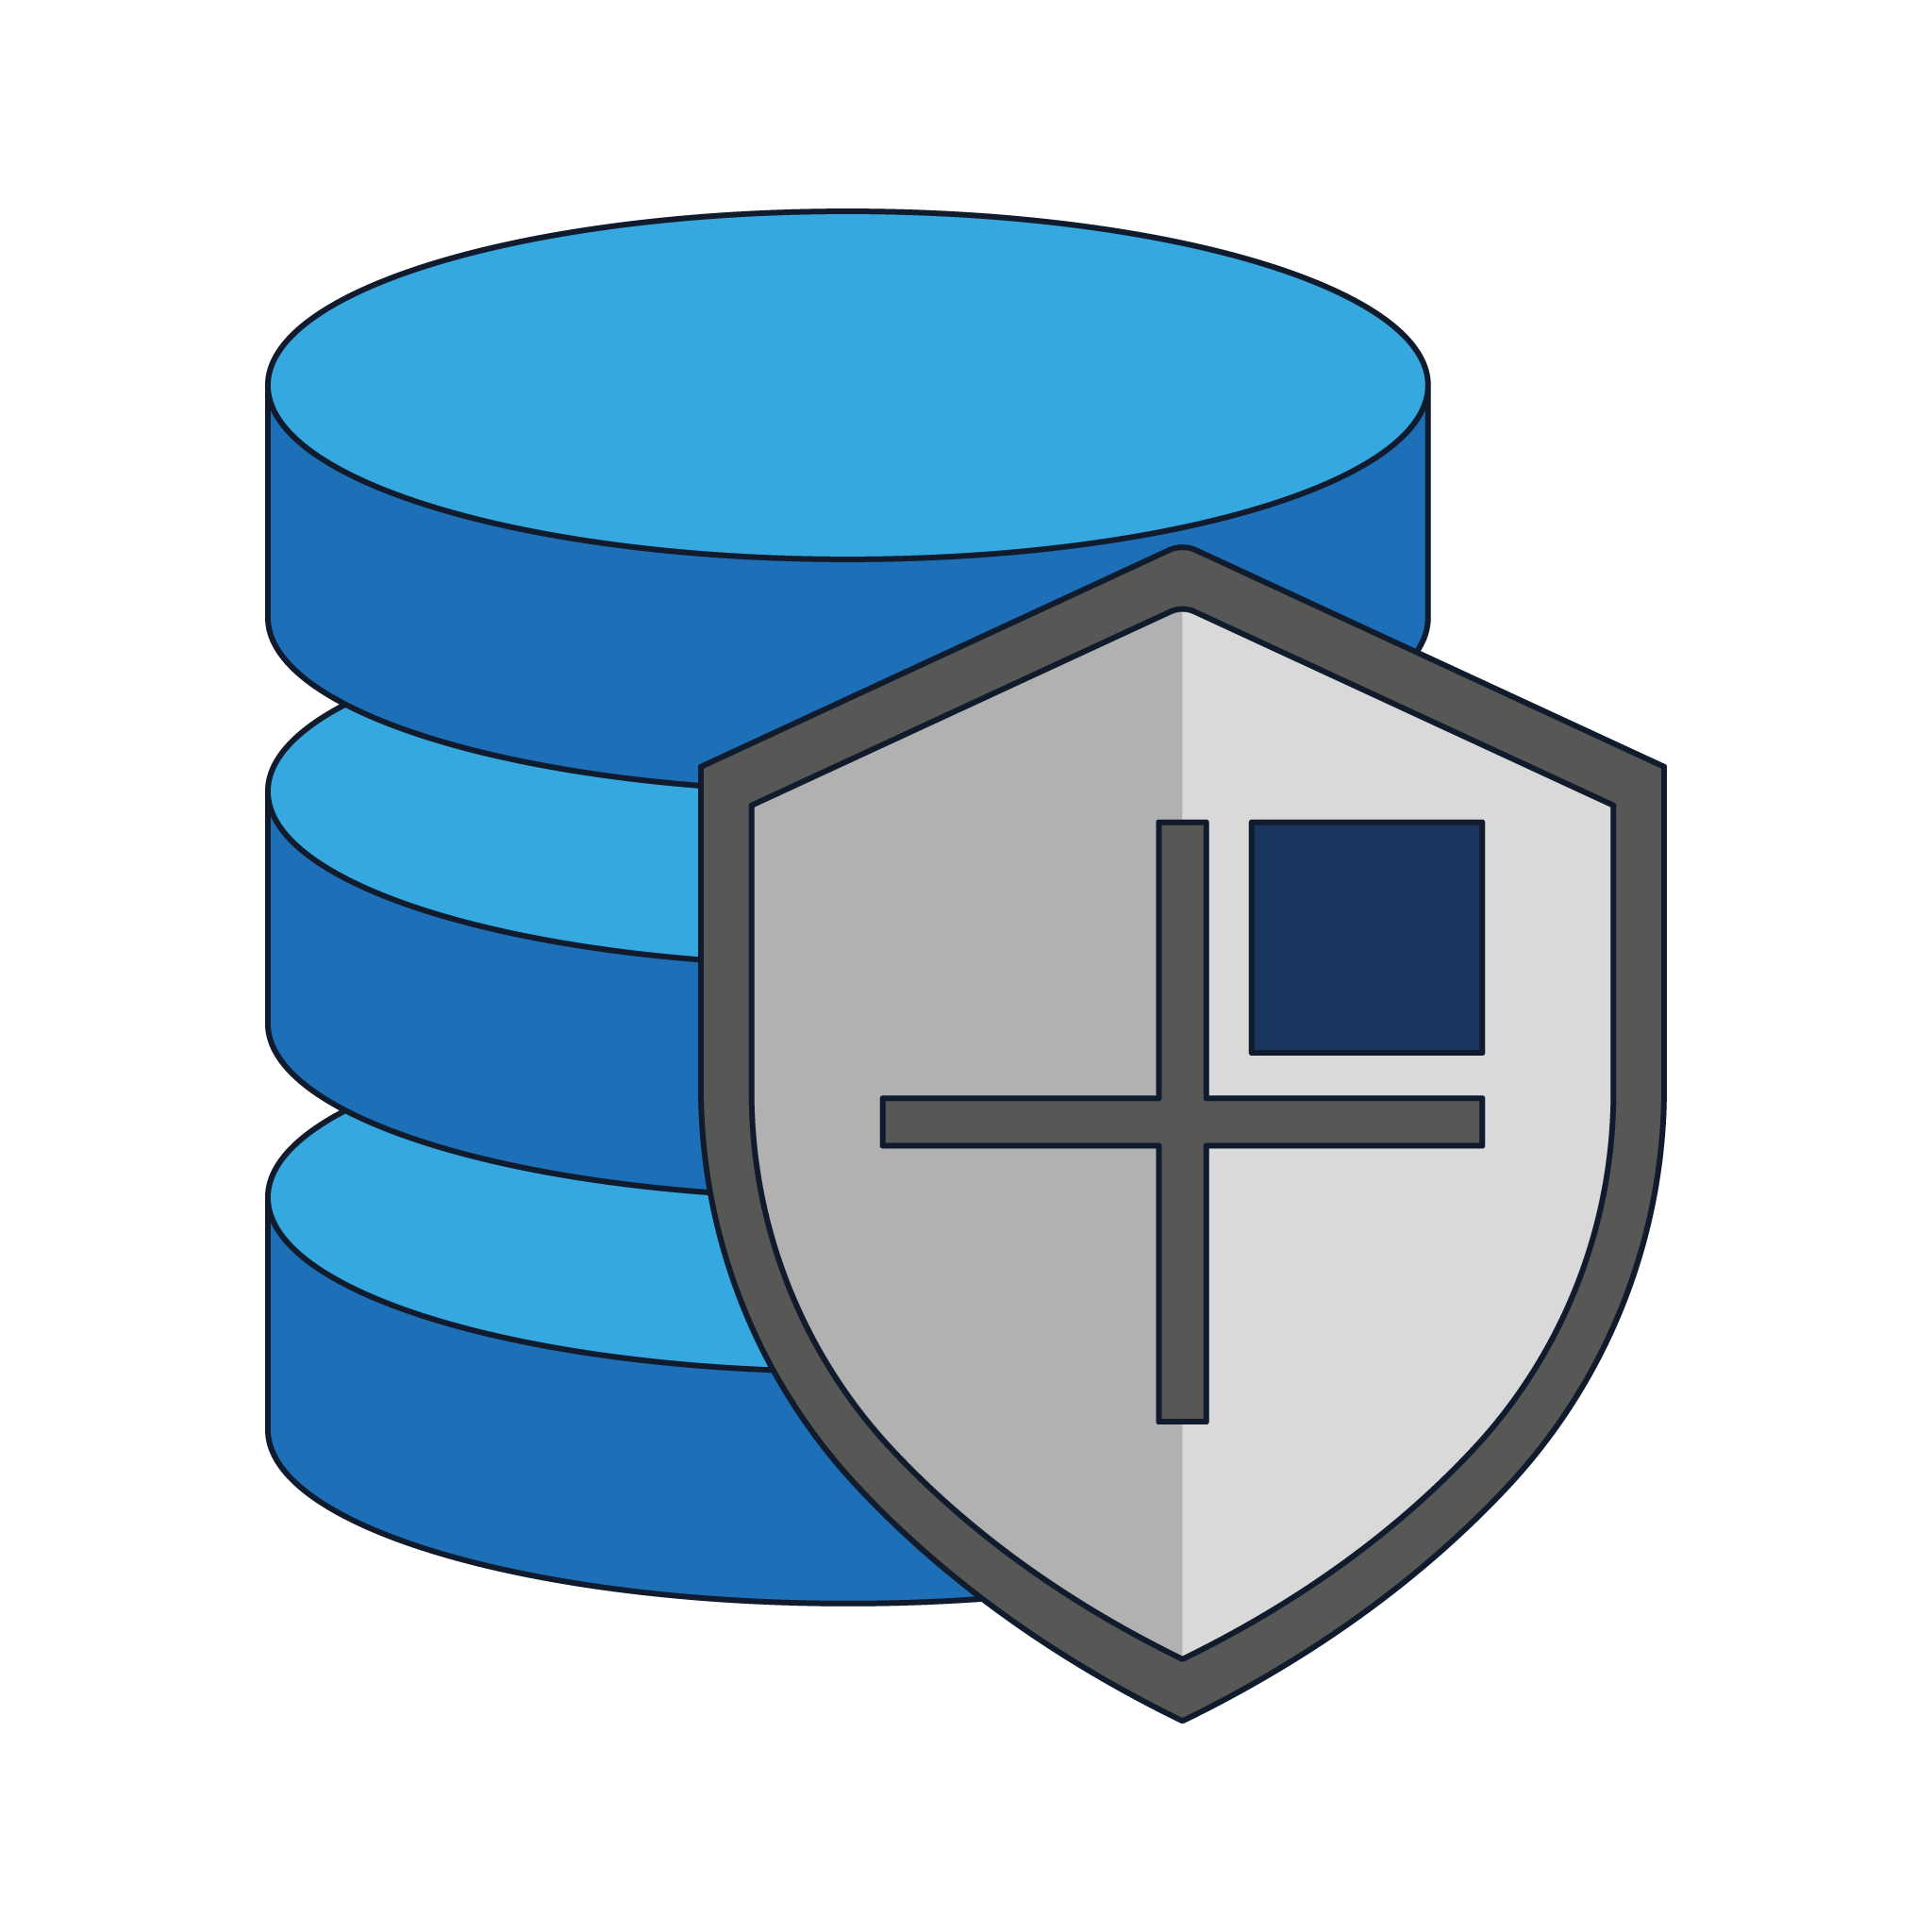 Evaluate and analyze your PostgreSQL database security with full documentation of vulnerabilities discovered along with a customized report with recommendations and prioritized remediation steps.